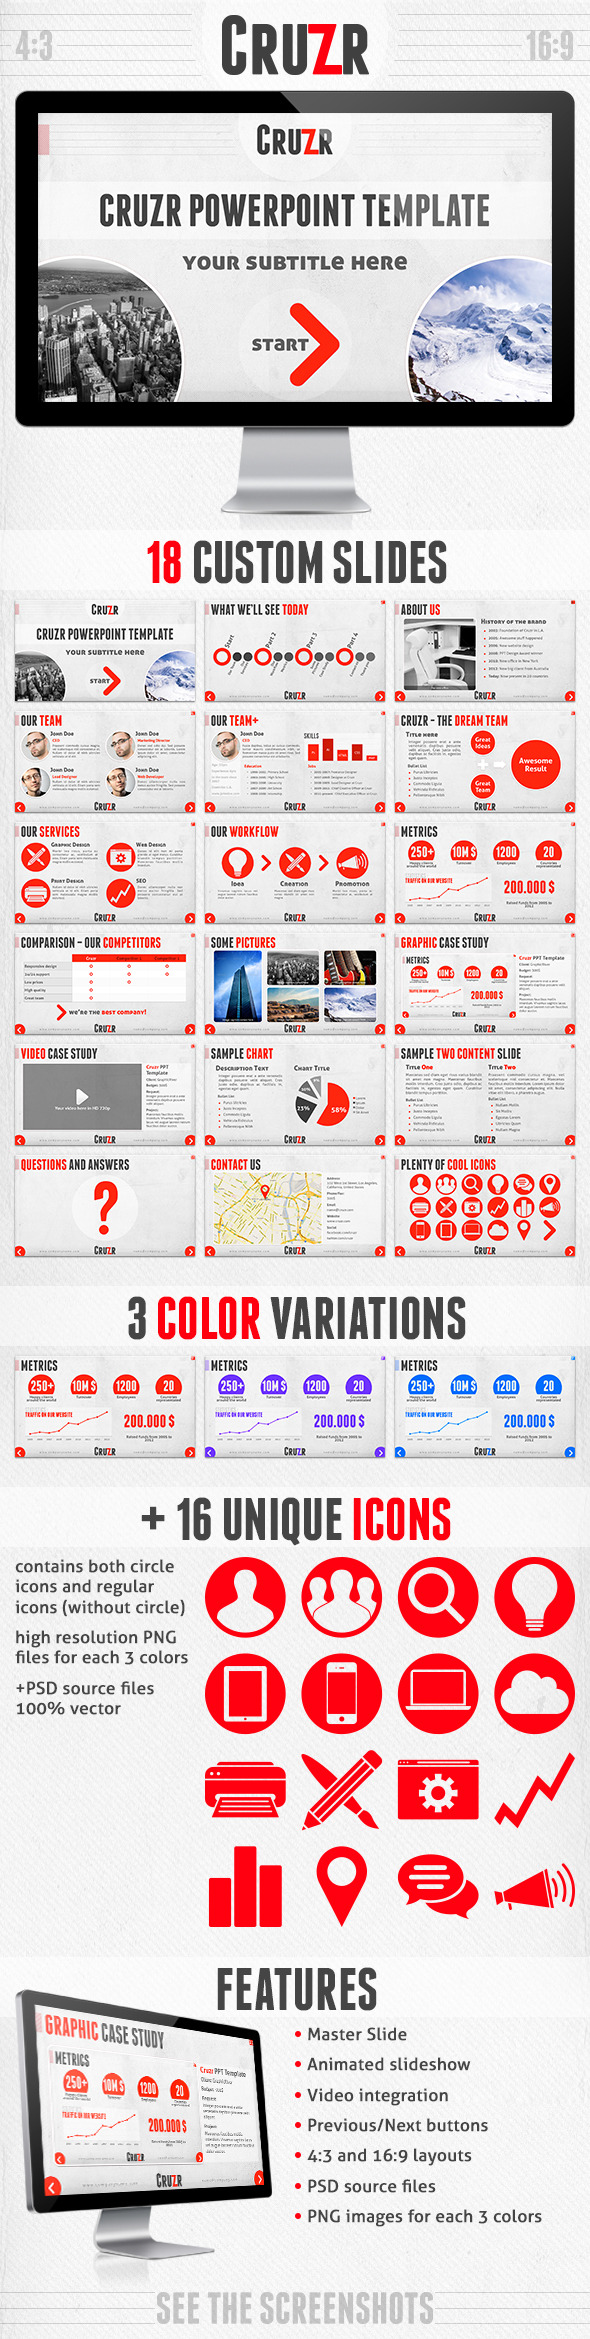 Cruzr PowerPoint Template - Creative PowerPoint Templates